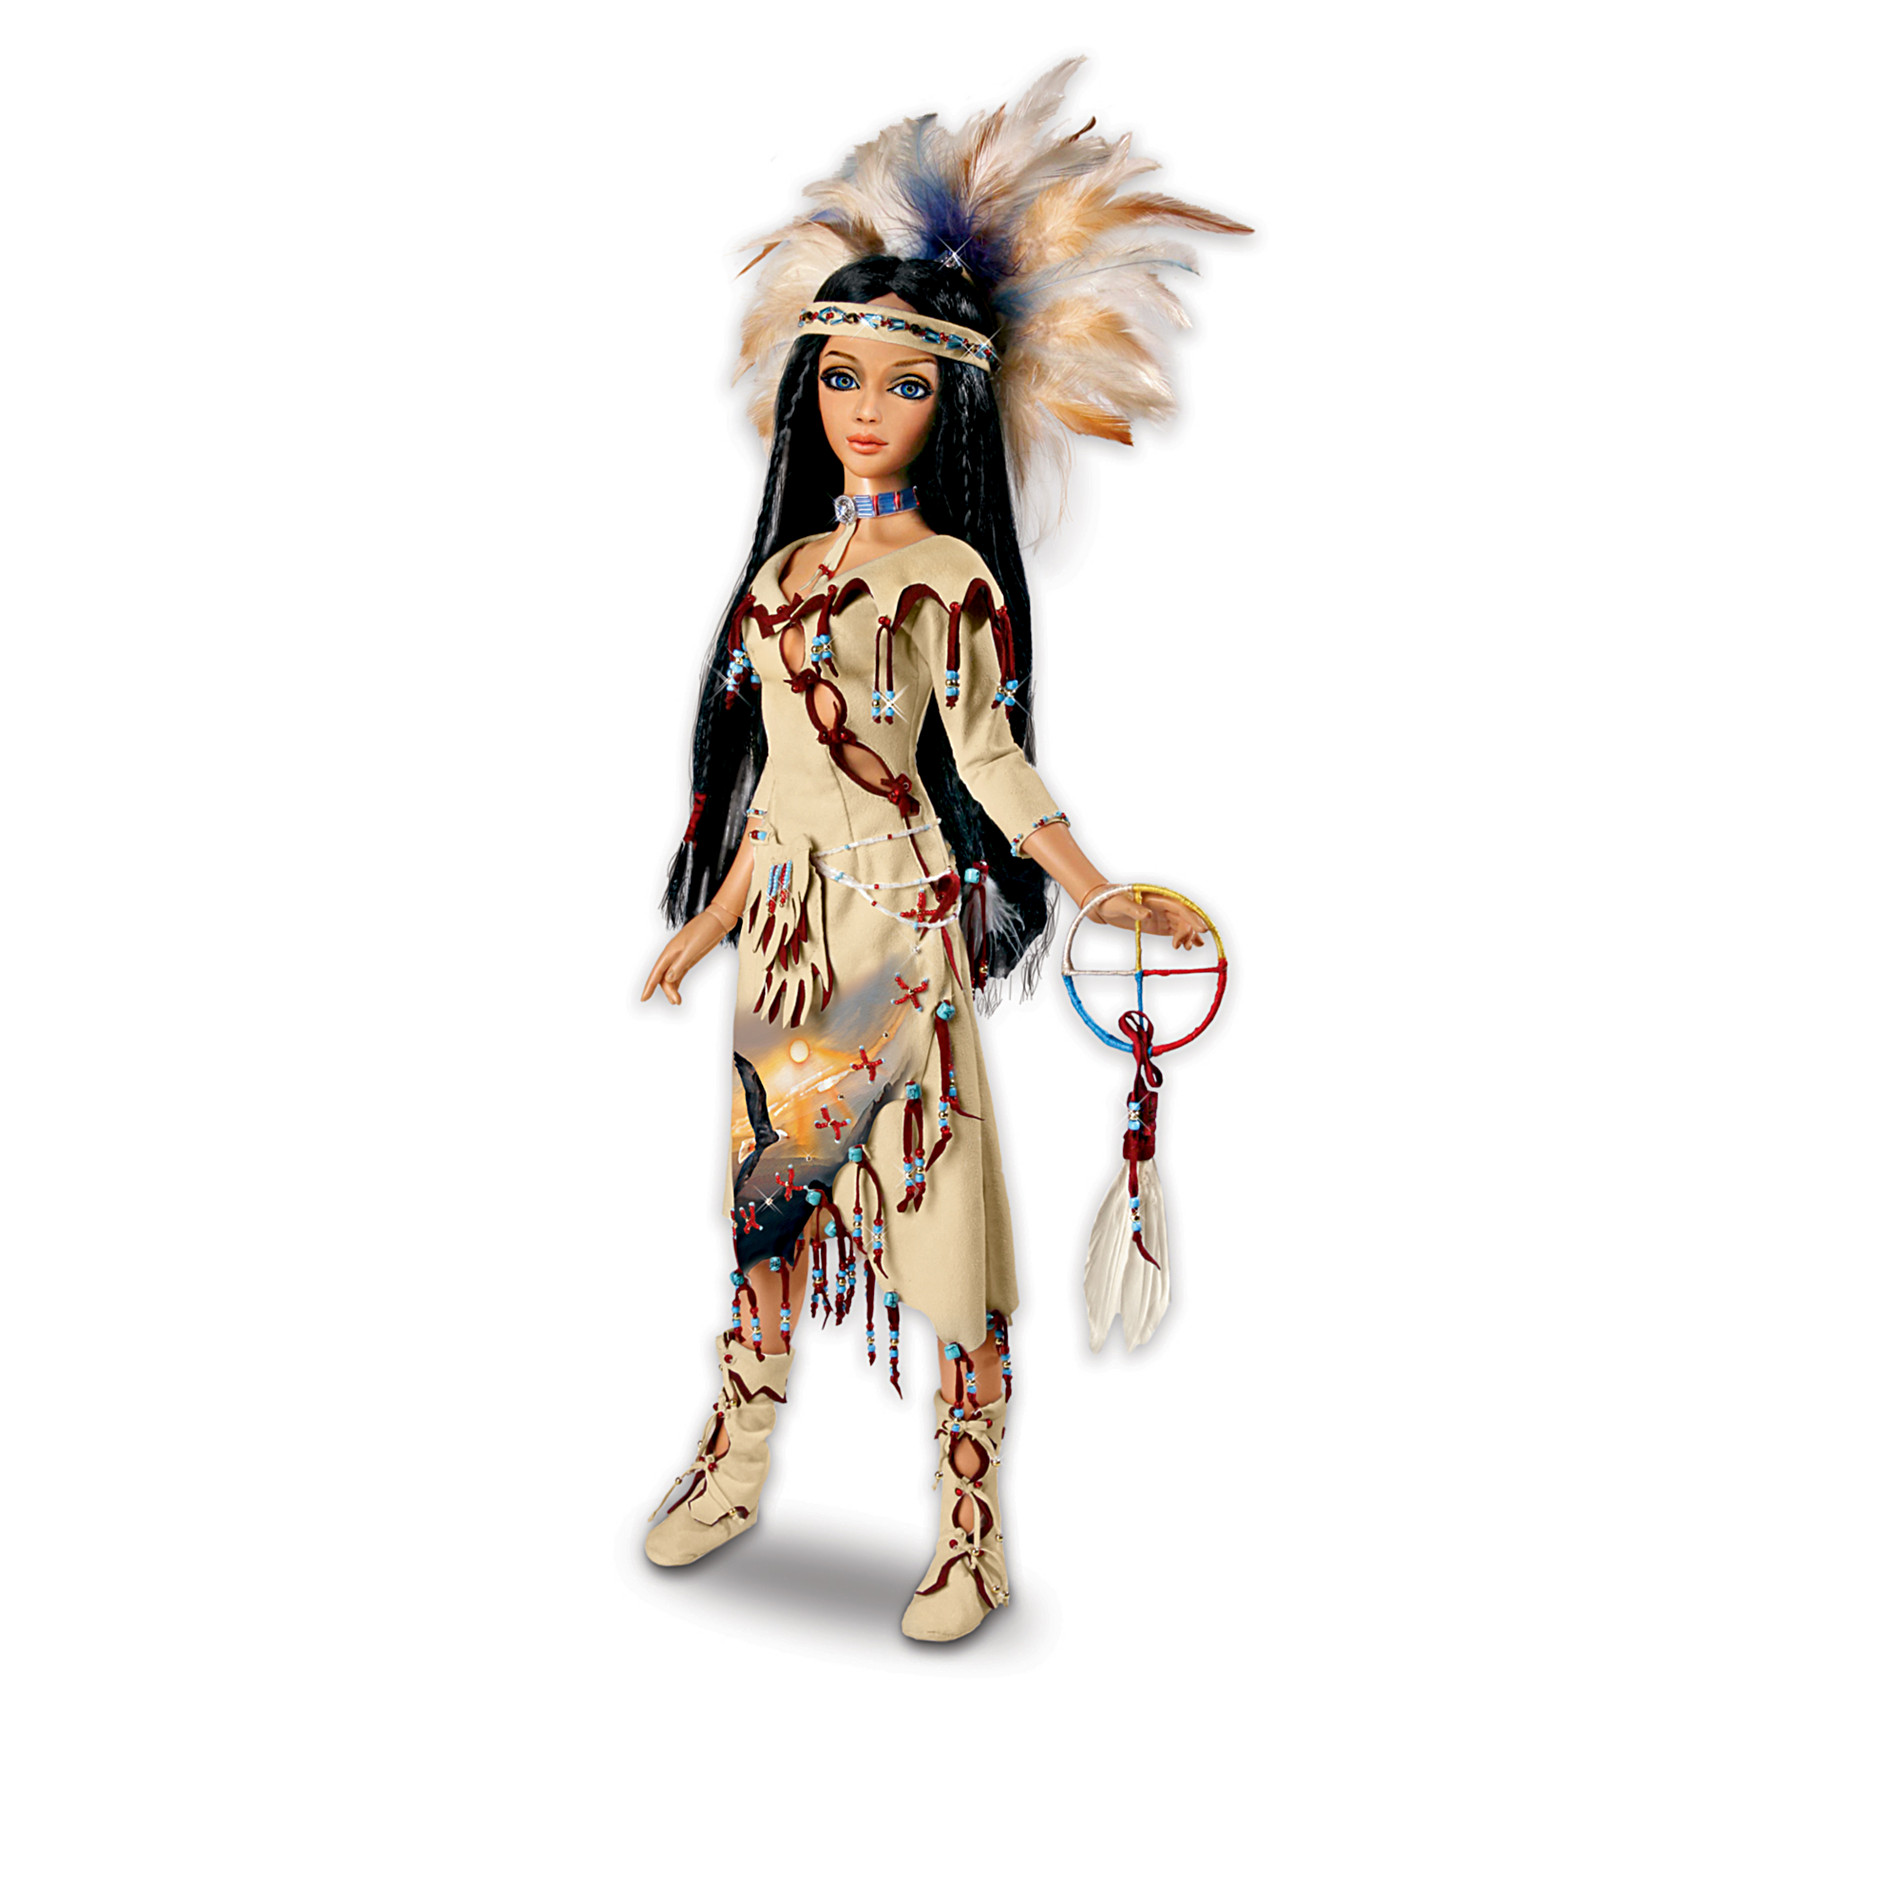 The Ashton Drake Galleries Sacred Maidens Of The Healing Spirit Ball-Jointed Doll Collection at Sears.com